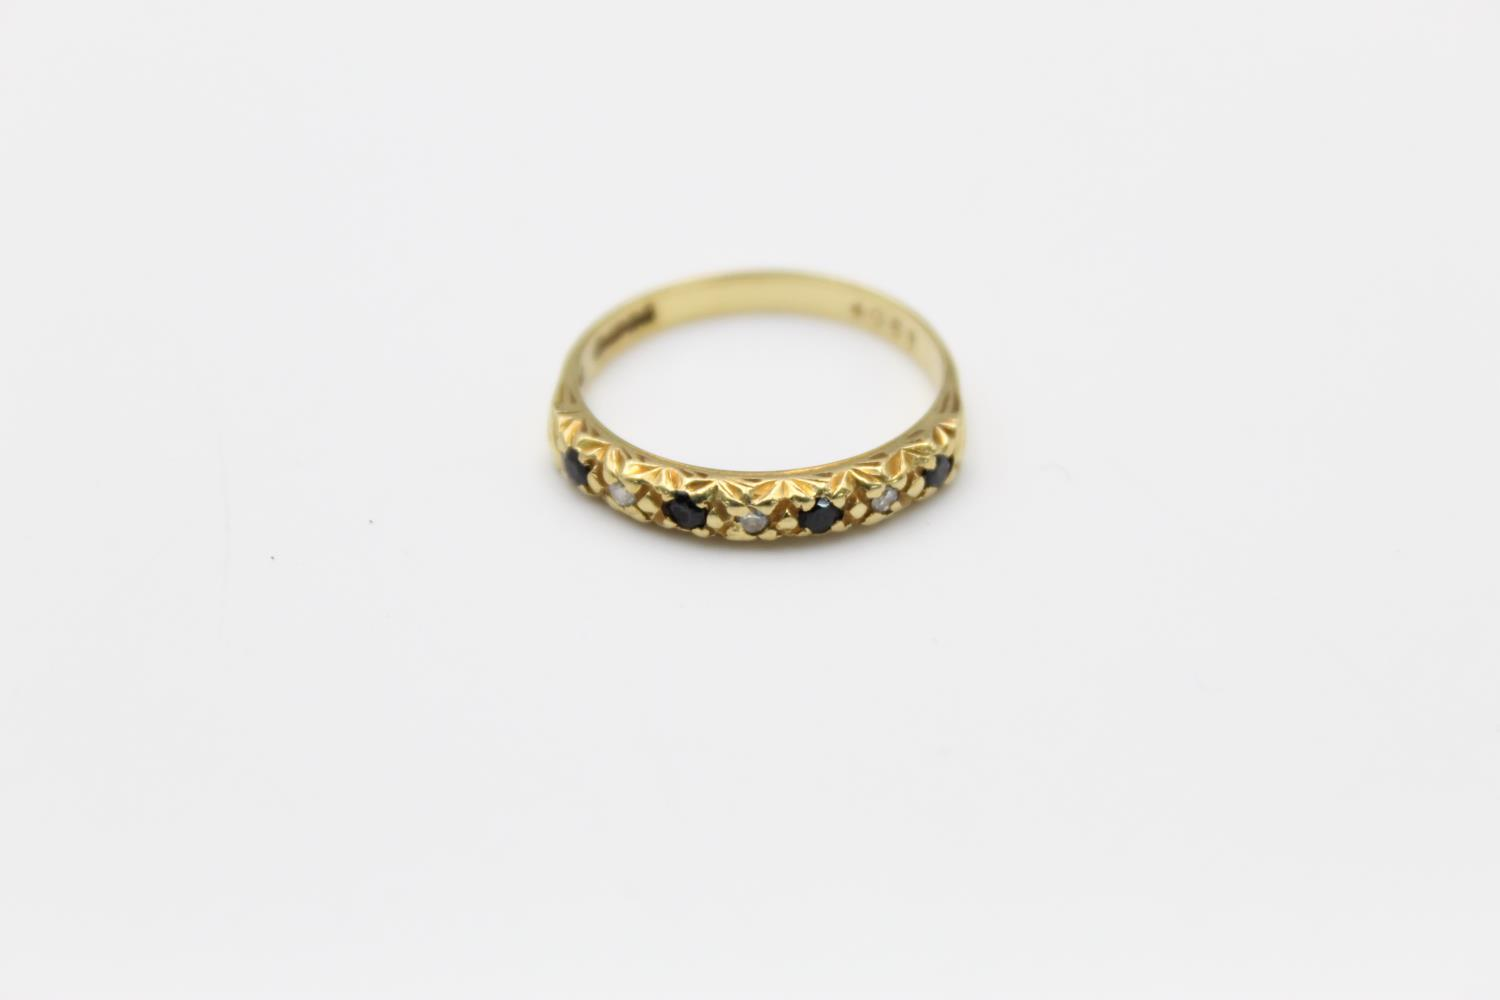 Vintage 18ct Gold diamond & sapphire seven stone gypsy style ring 3.1g Size P